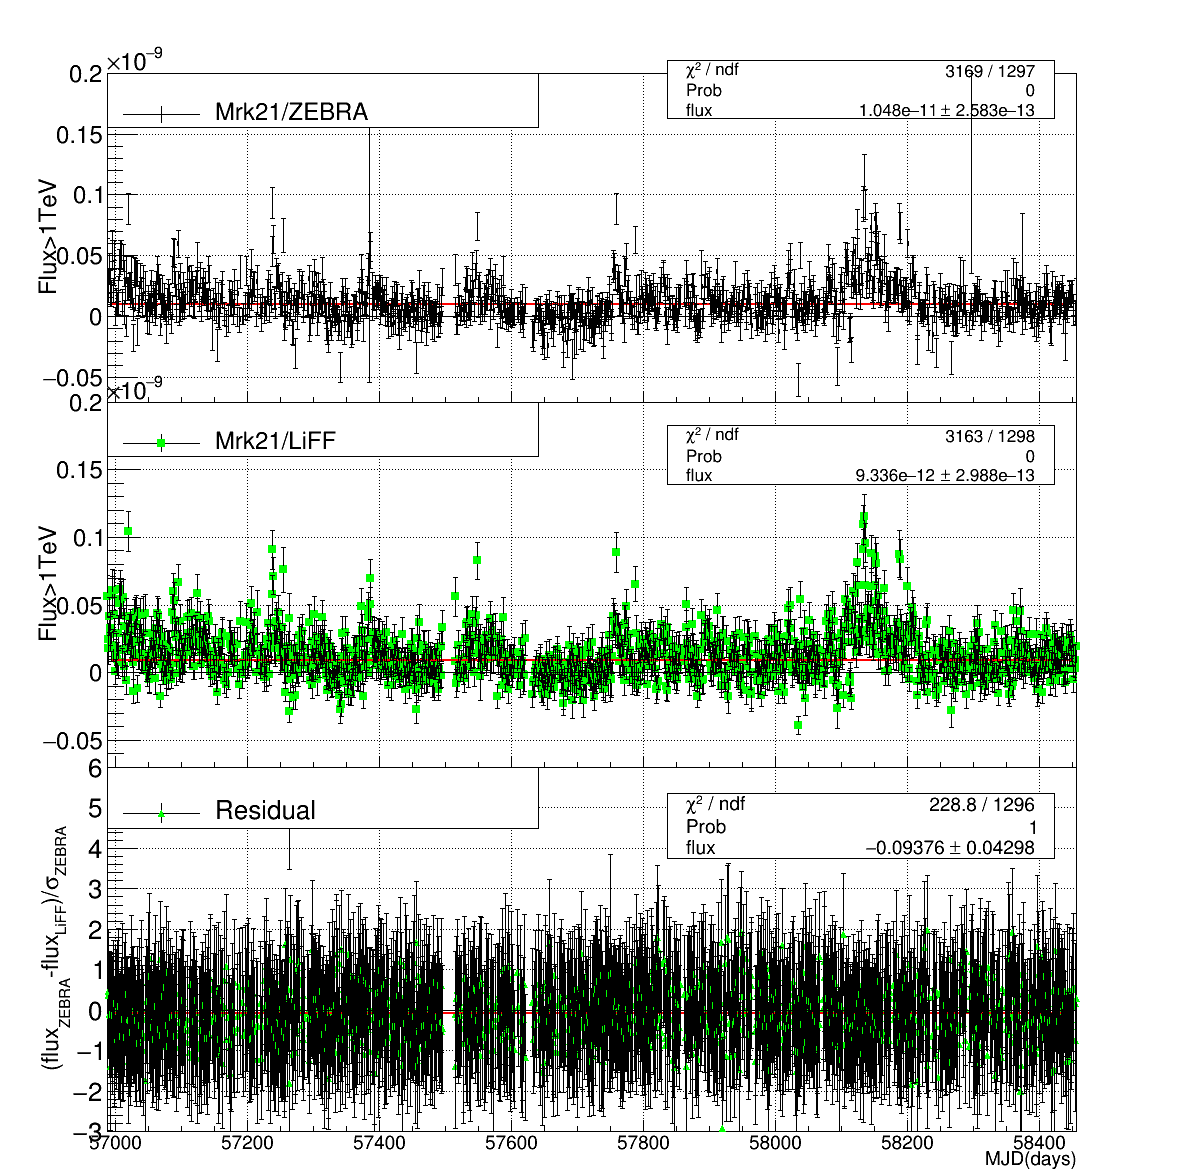 Mrk421 LC comparison using ZEBRA(top) and liff (middle). The difference (bottom) taken between ZEBRA and liff divided by the flux uncertainty of ZEBRA shows the consistency between both flux estimation methods.